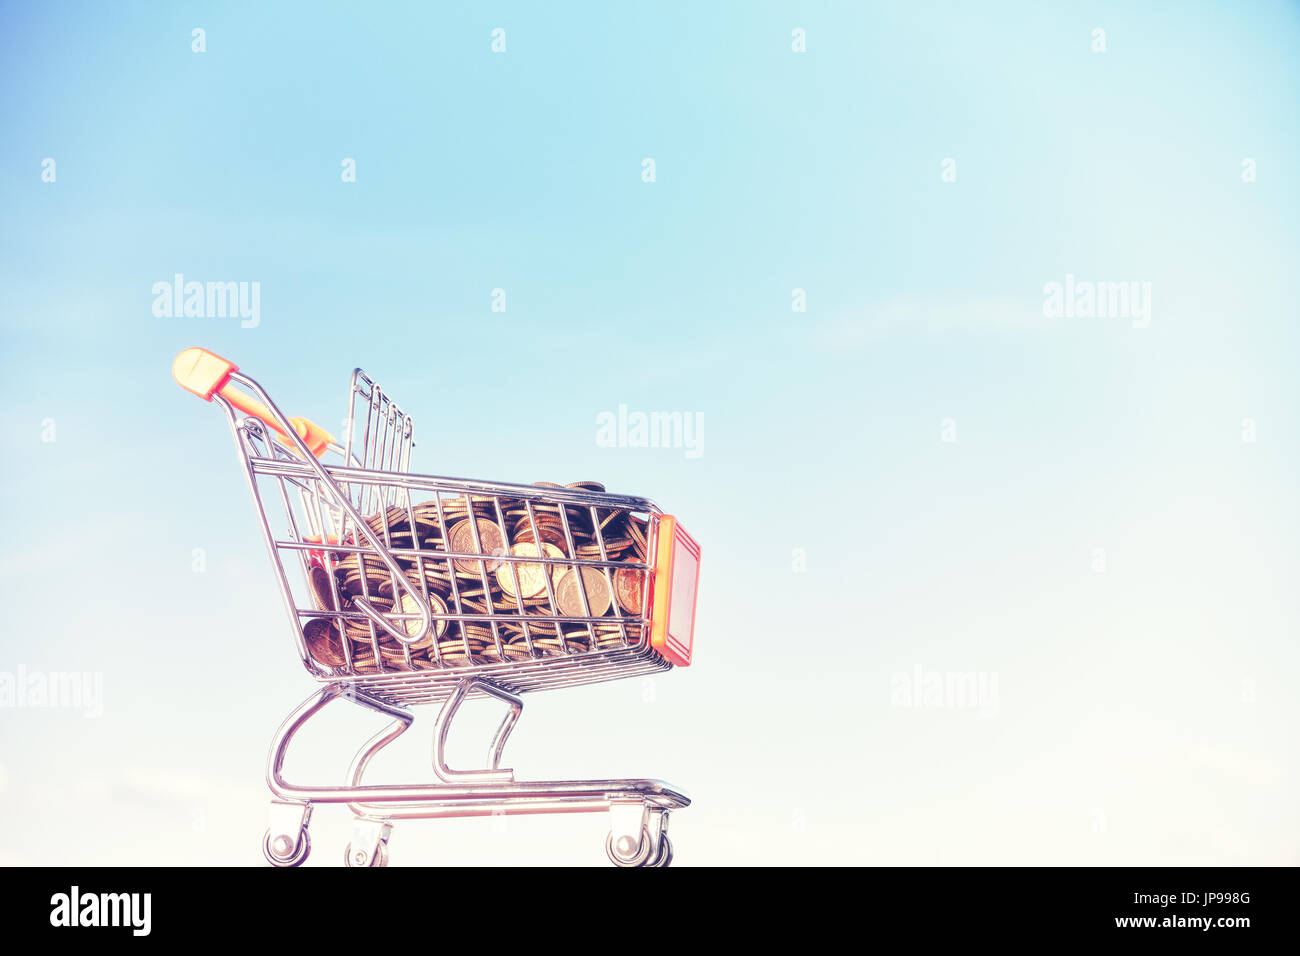 Miniature supermarket shopping cart filled with golden coins against blue sky, color toning applied. - Stock Image